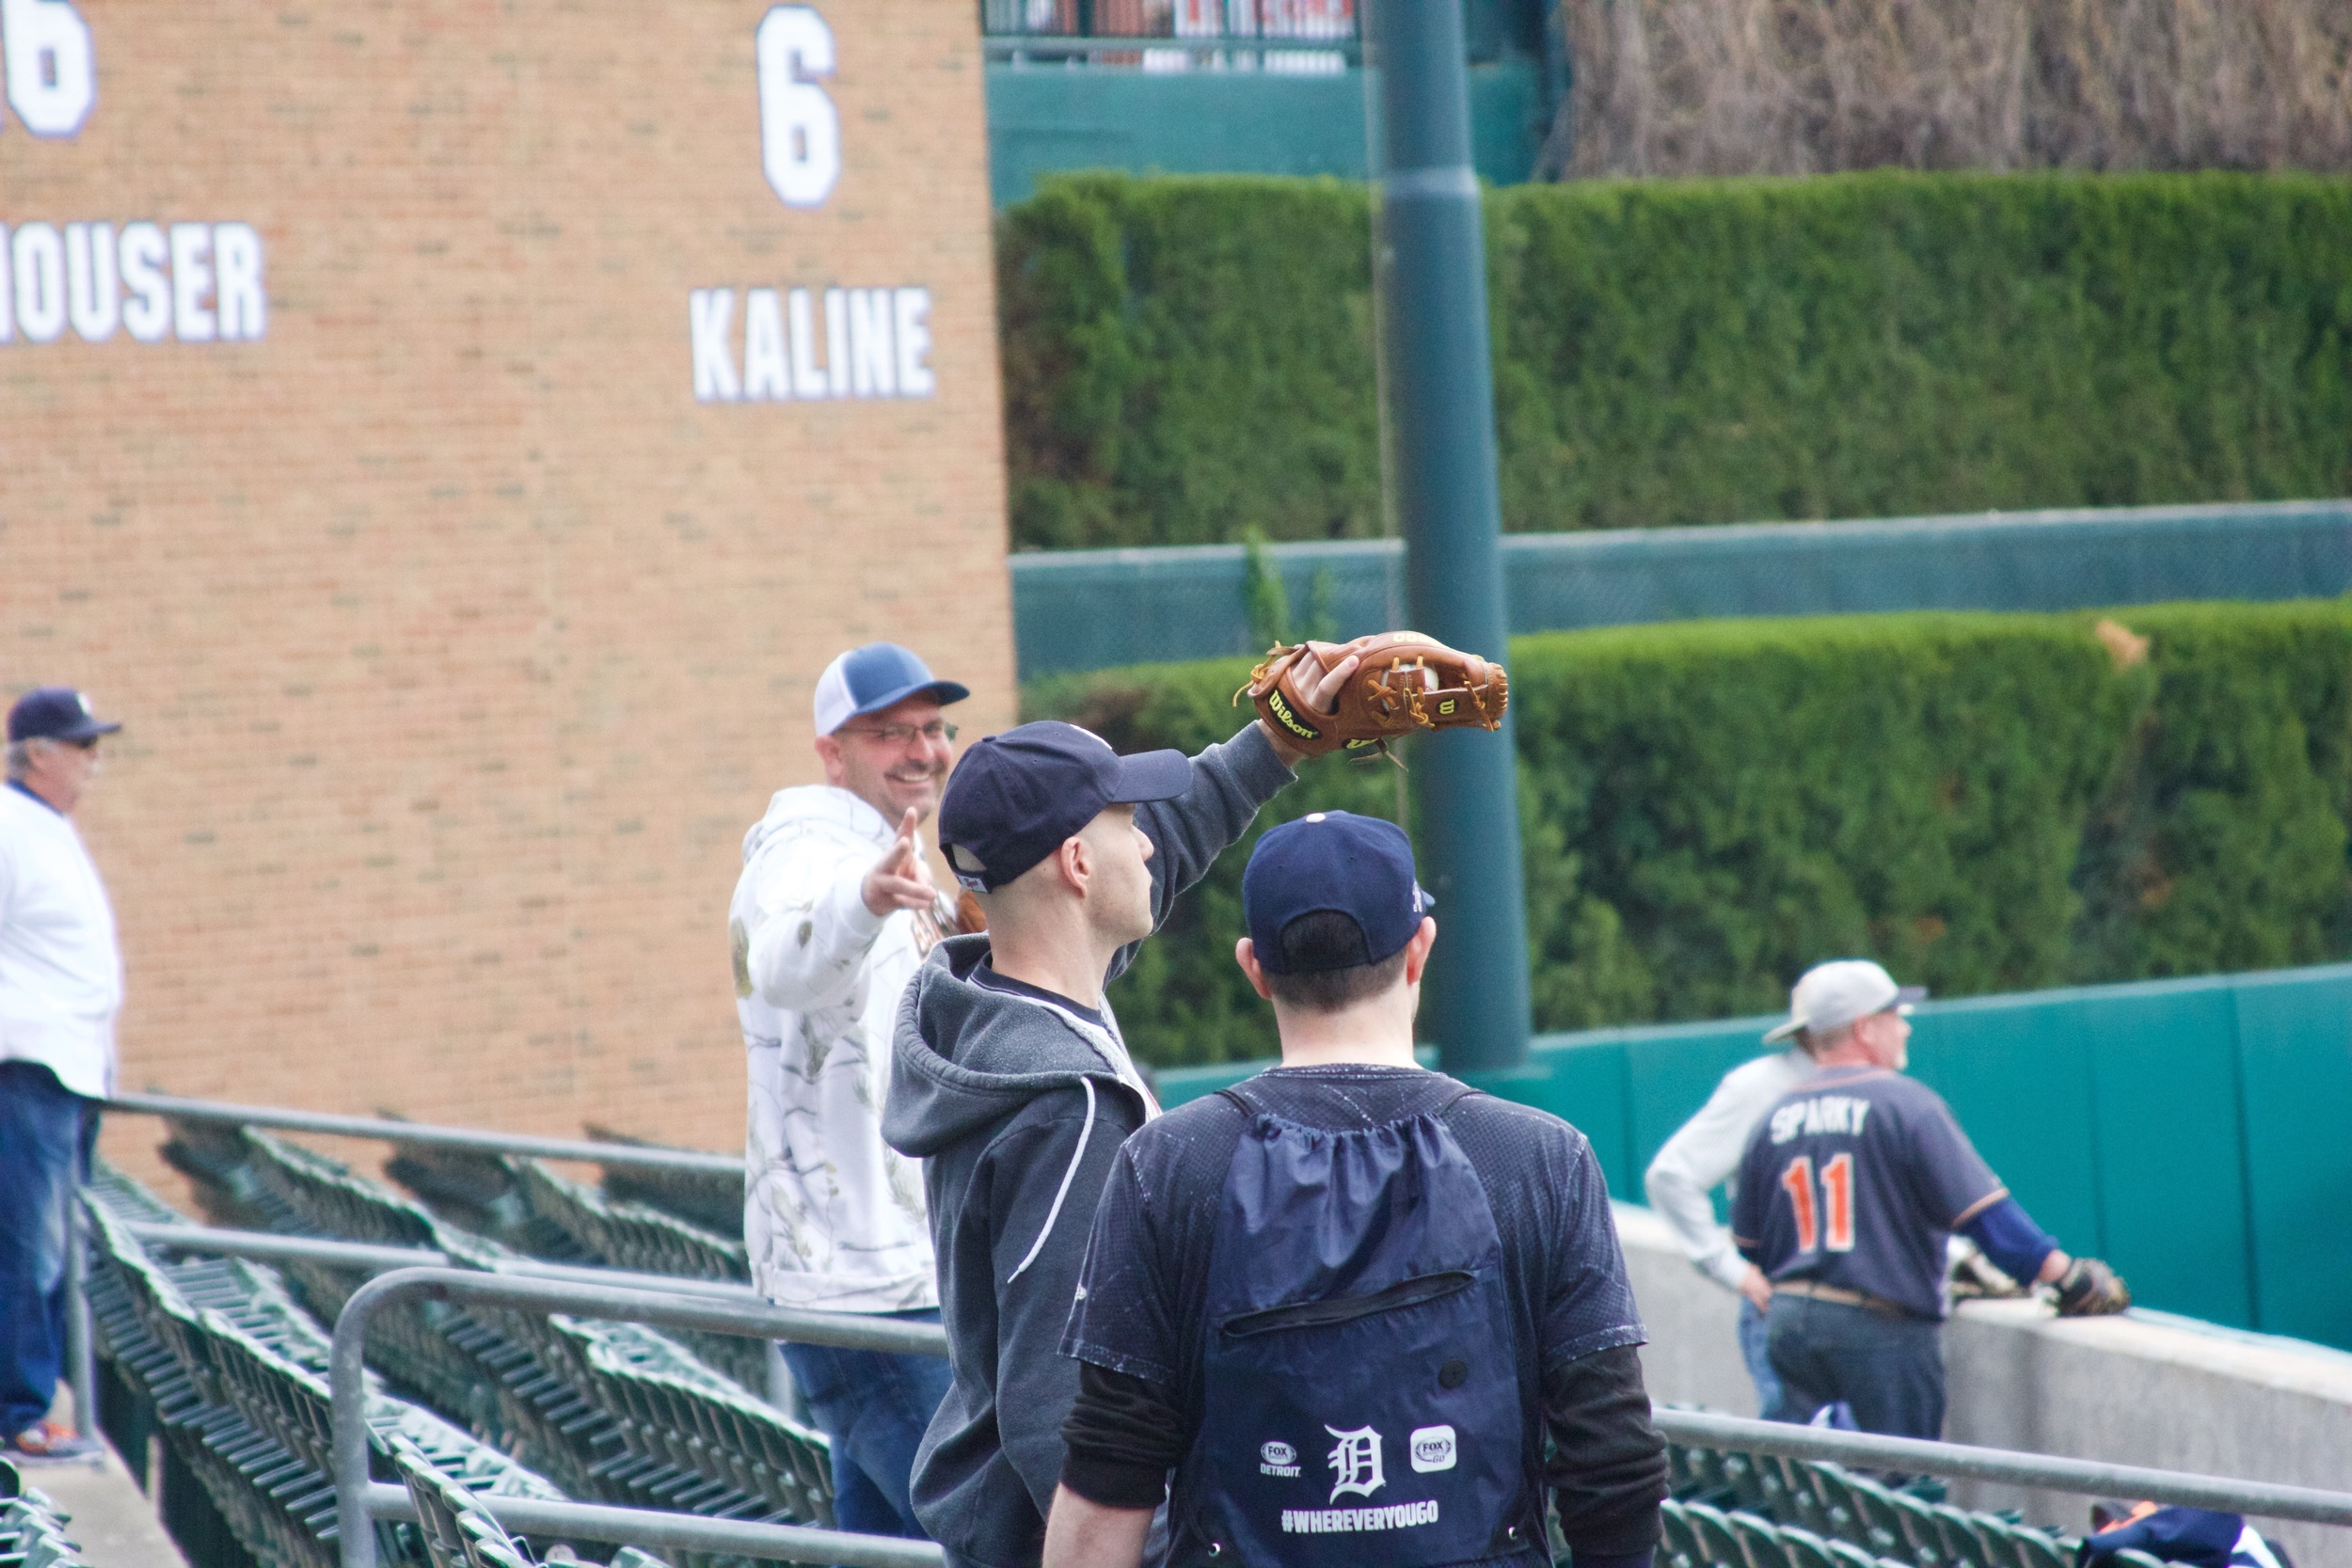 30_zack_catching_ball8744_long_throw_from_anthony_gose.jpg